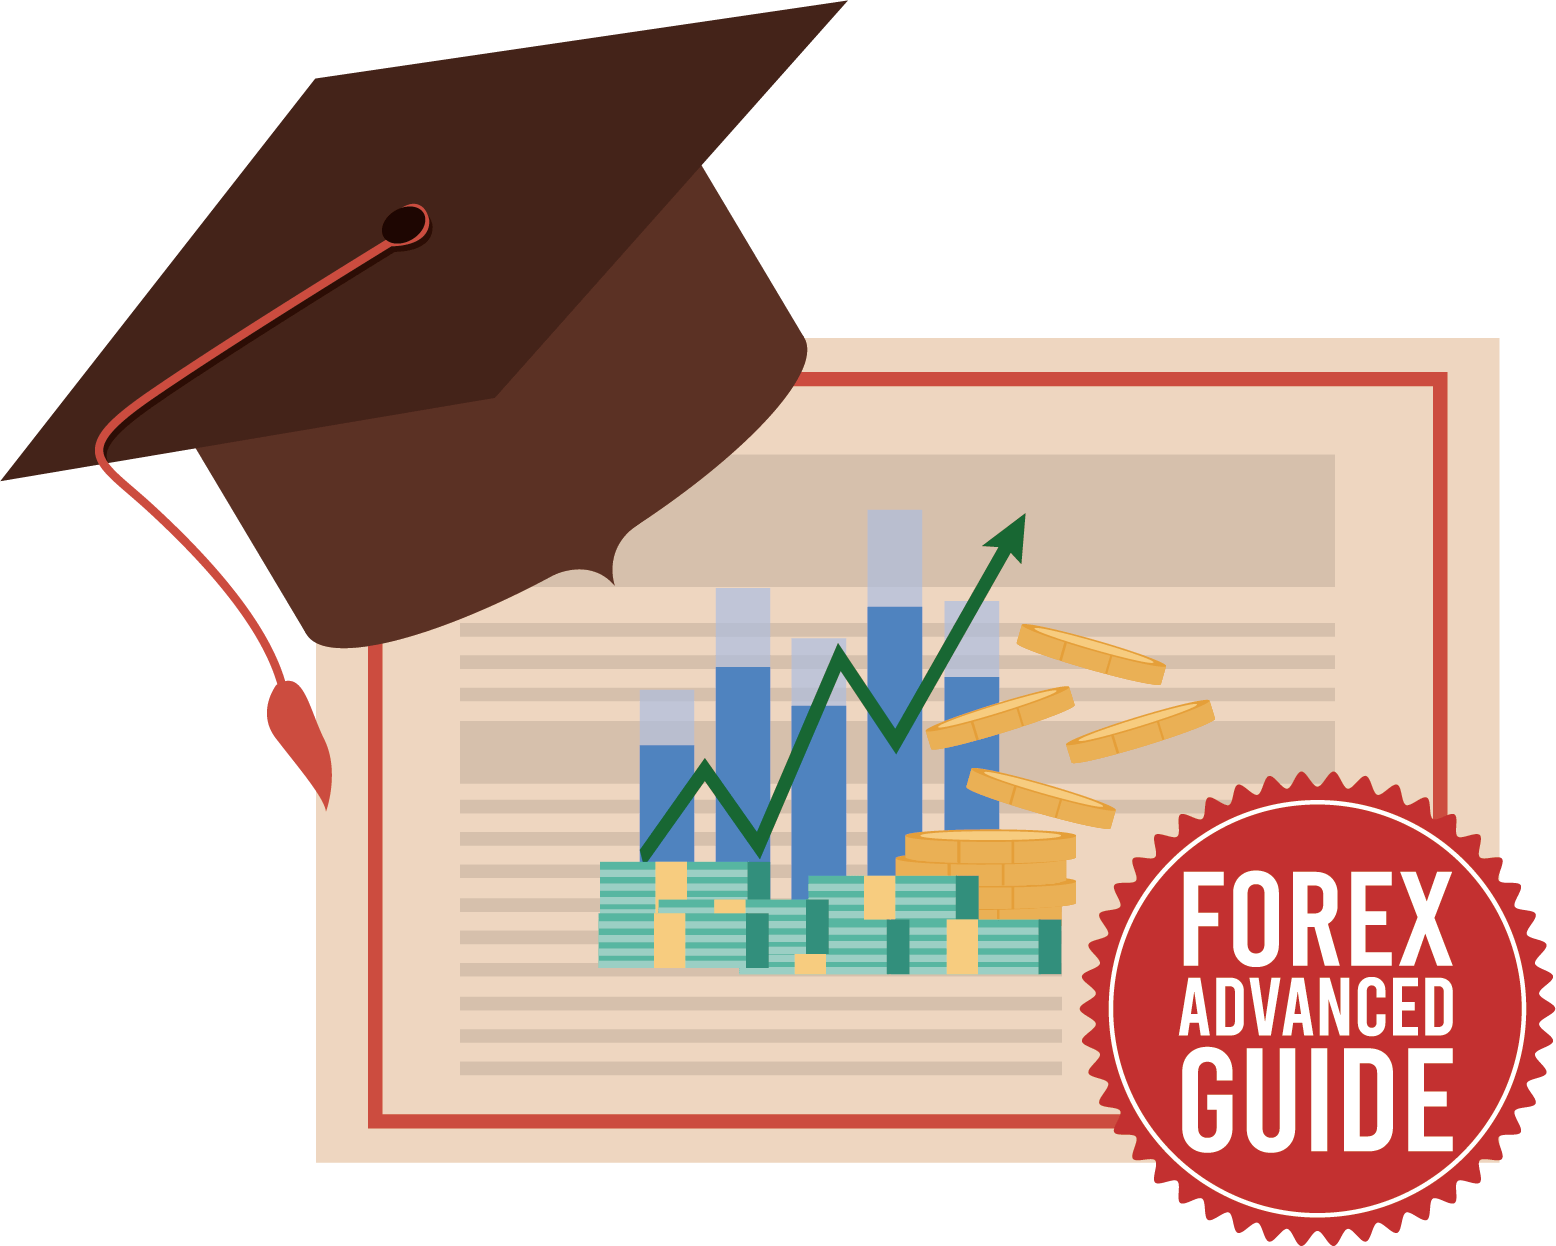 Forex Advanced guide